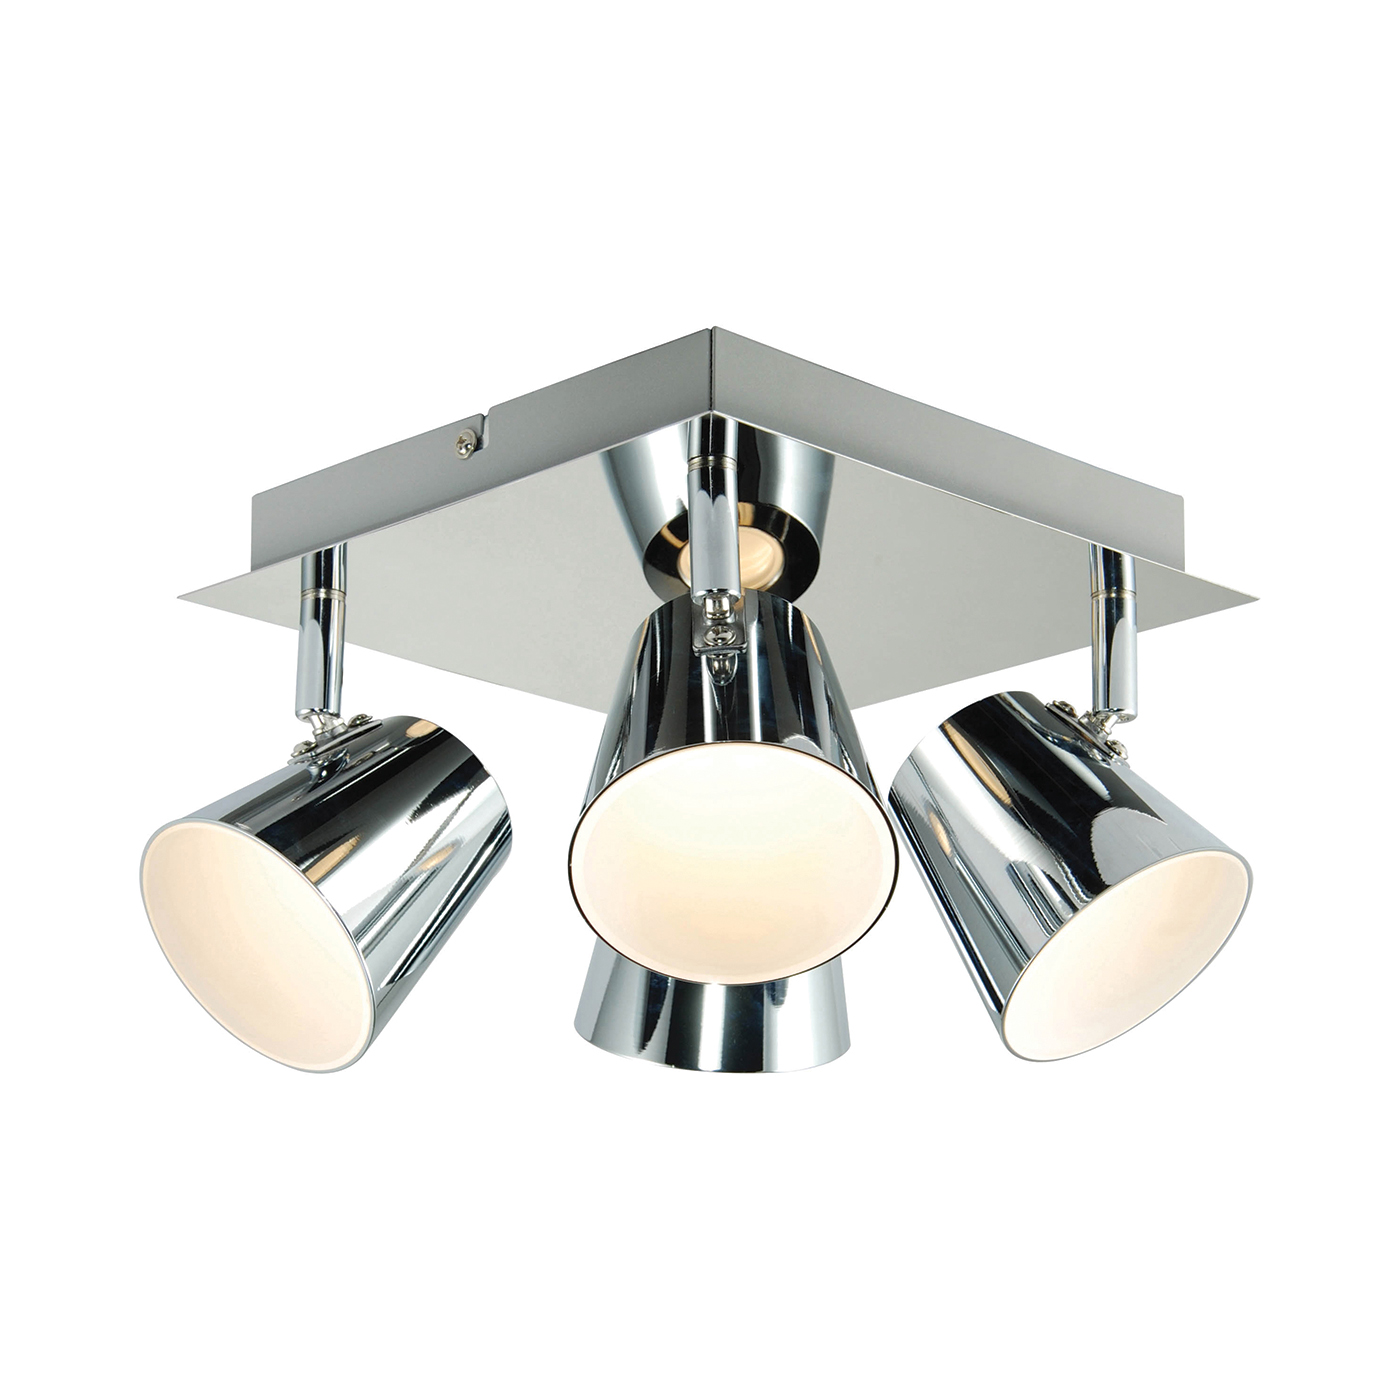 Endon Torsion ceiling spotlight square 4x 5W Chrome effect plate frosted acrylic